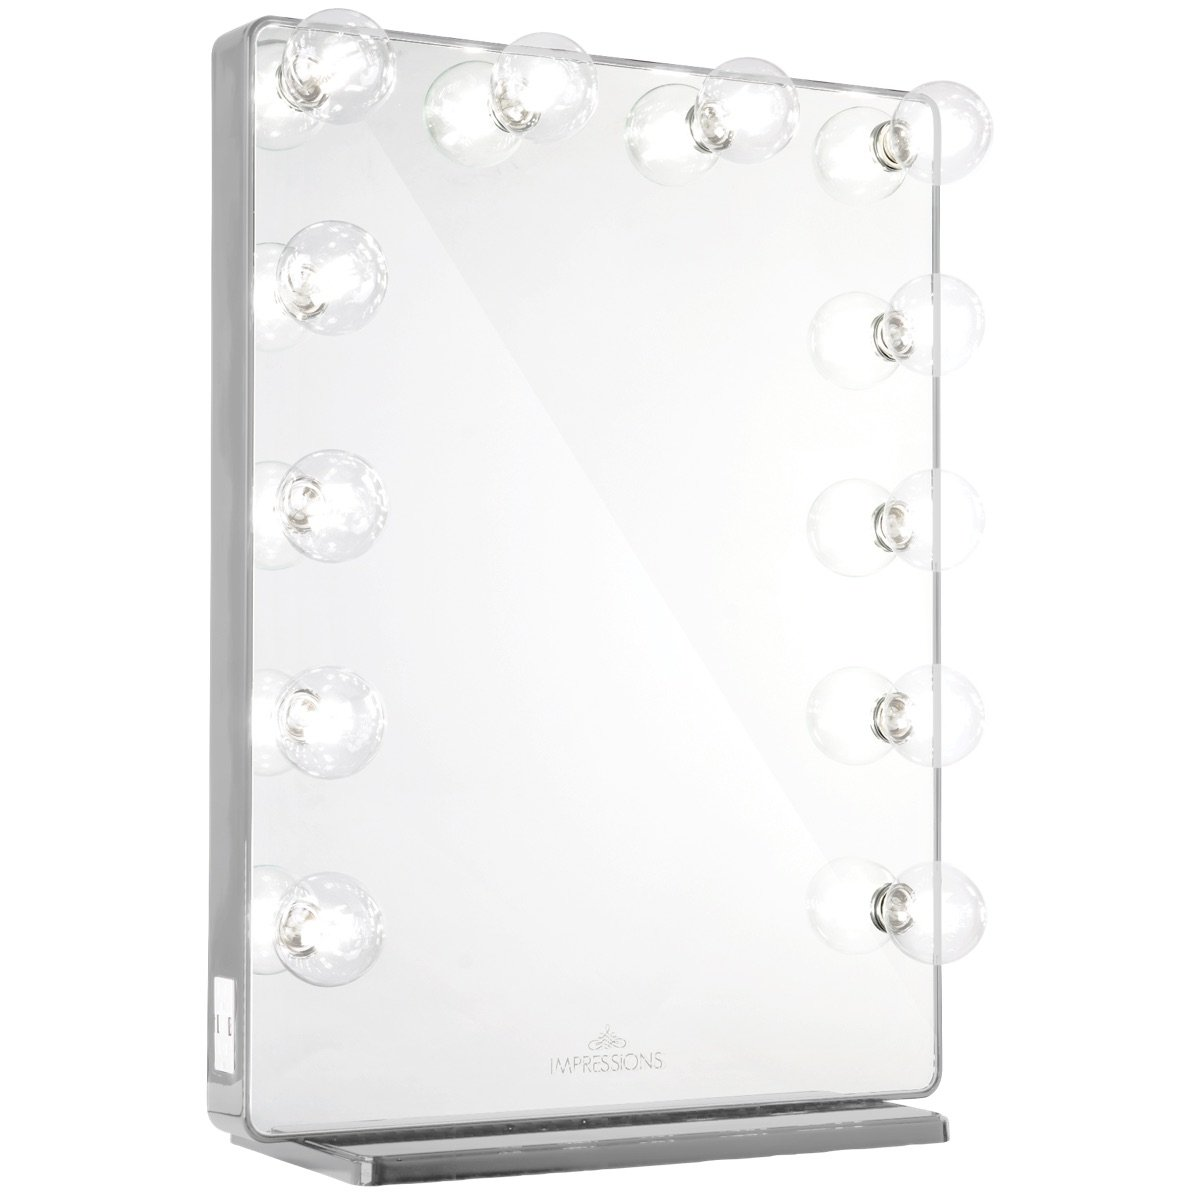 Shimmery Silver Vanity Mirror w/ Clear LED Light Bulbs